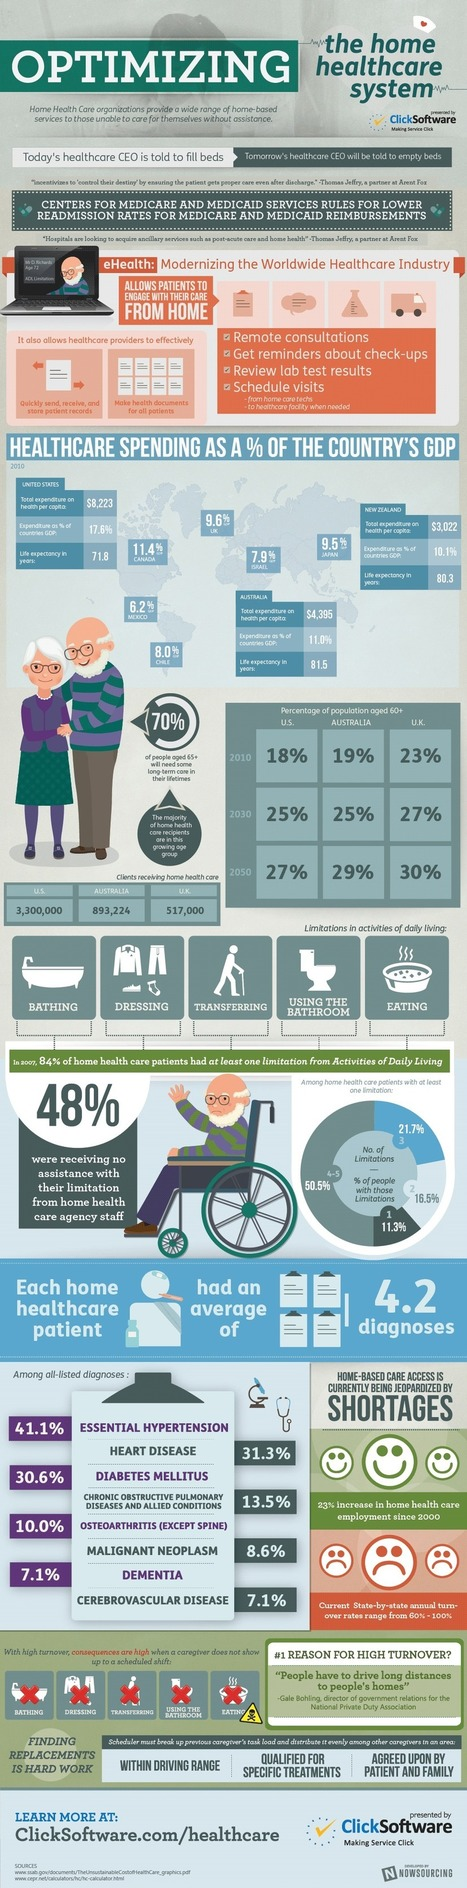 Optimizing the Home Healthcare System [Infographic] | Business 2 Community | Digital-News on Scoop.it today | Scoop.it